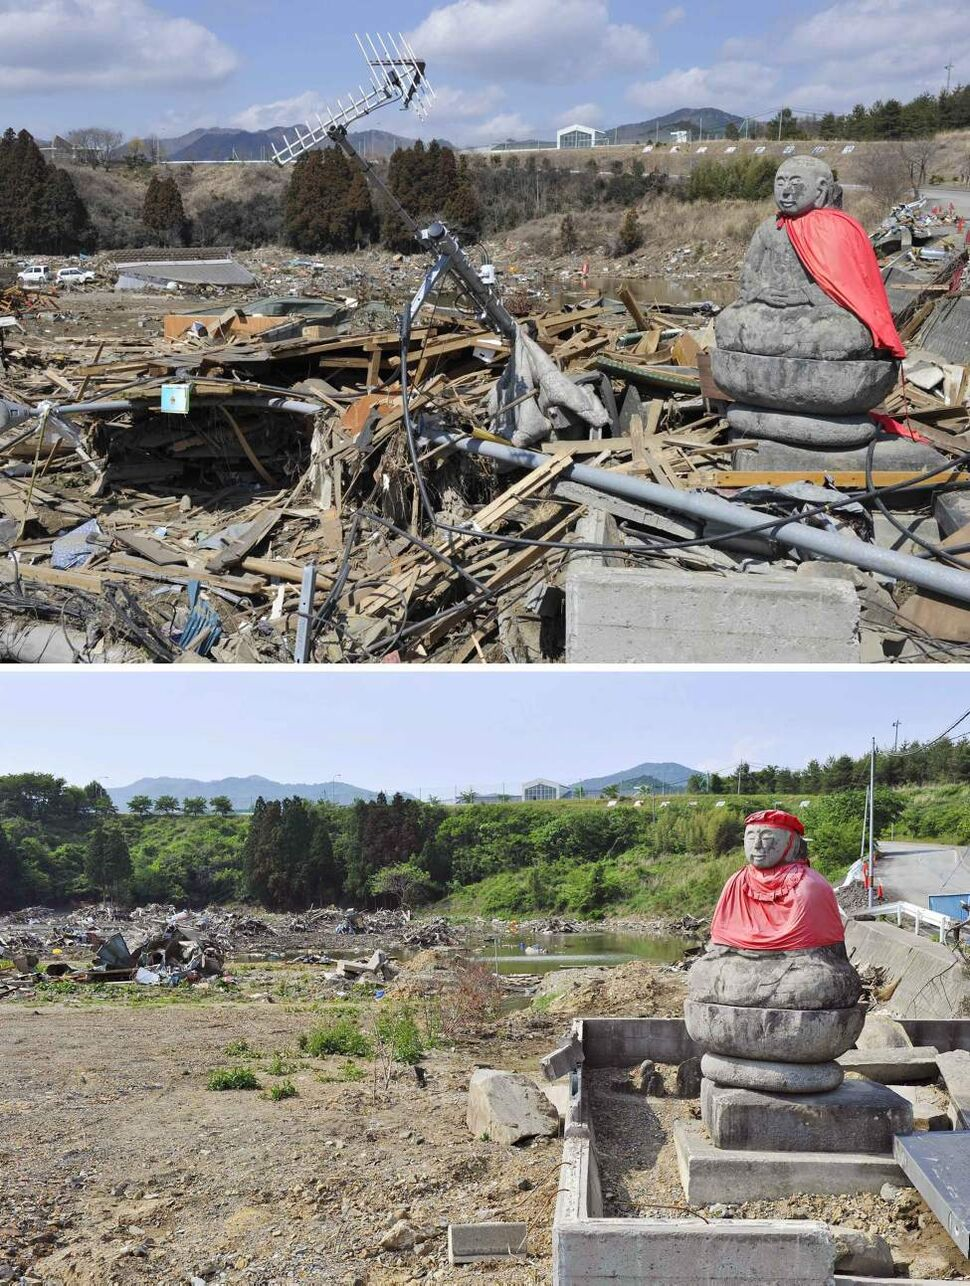 In this combo of two photos, a TV antenna leans near a stone statue of the guardian deity of children sitting among the debris in Ishinomaki, Miyagi prefecture, northeastern Japan, on March 24, 2011, days after the devastating earthquake and tsunami hit the area, top, and the same area, bottom, with the debris cleared and the statue wearing a new red cap as photographed on June 4, 2011. Japan marks three months since the March 11 earthquake and tsunami that struck the nation's eastern coast on Saturday, June 11, 2011. (AP Photo/Kyodo News)